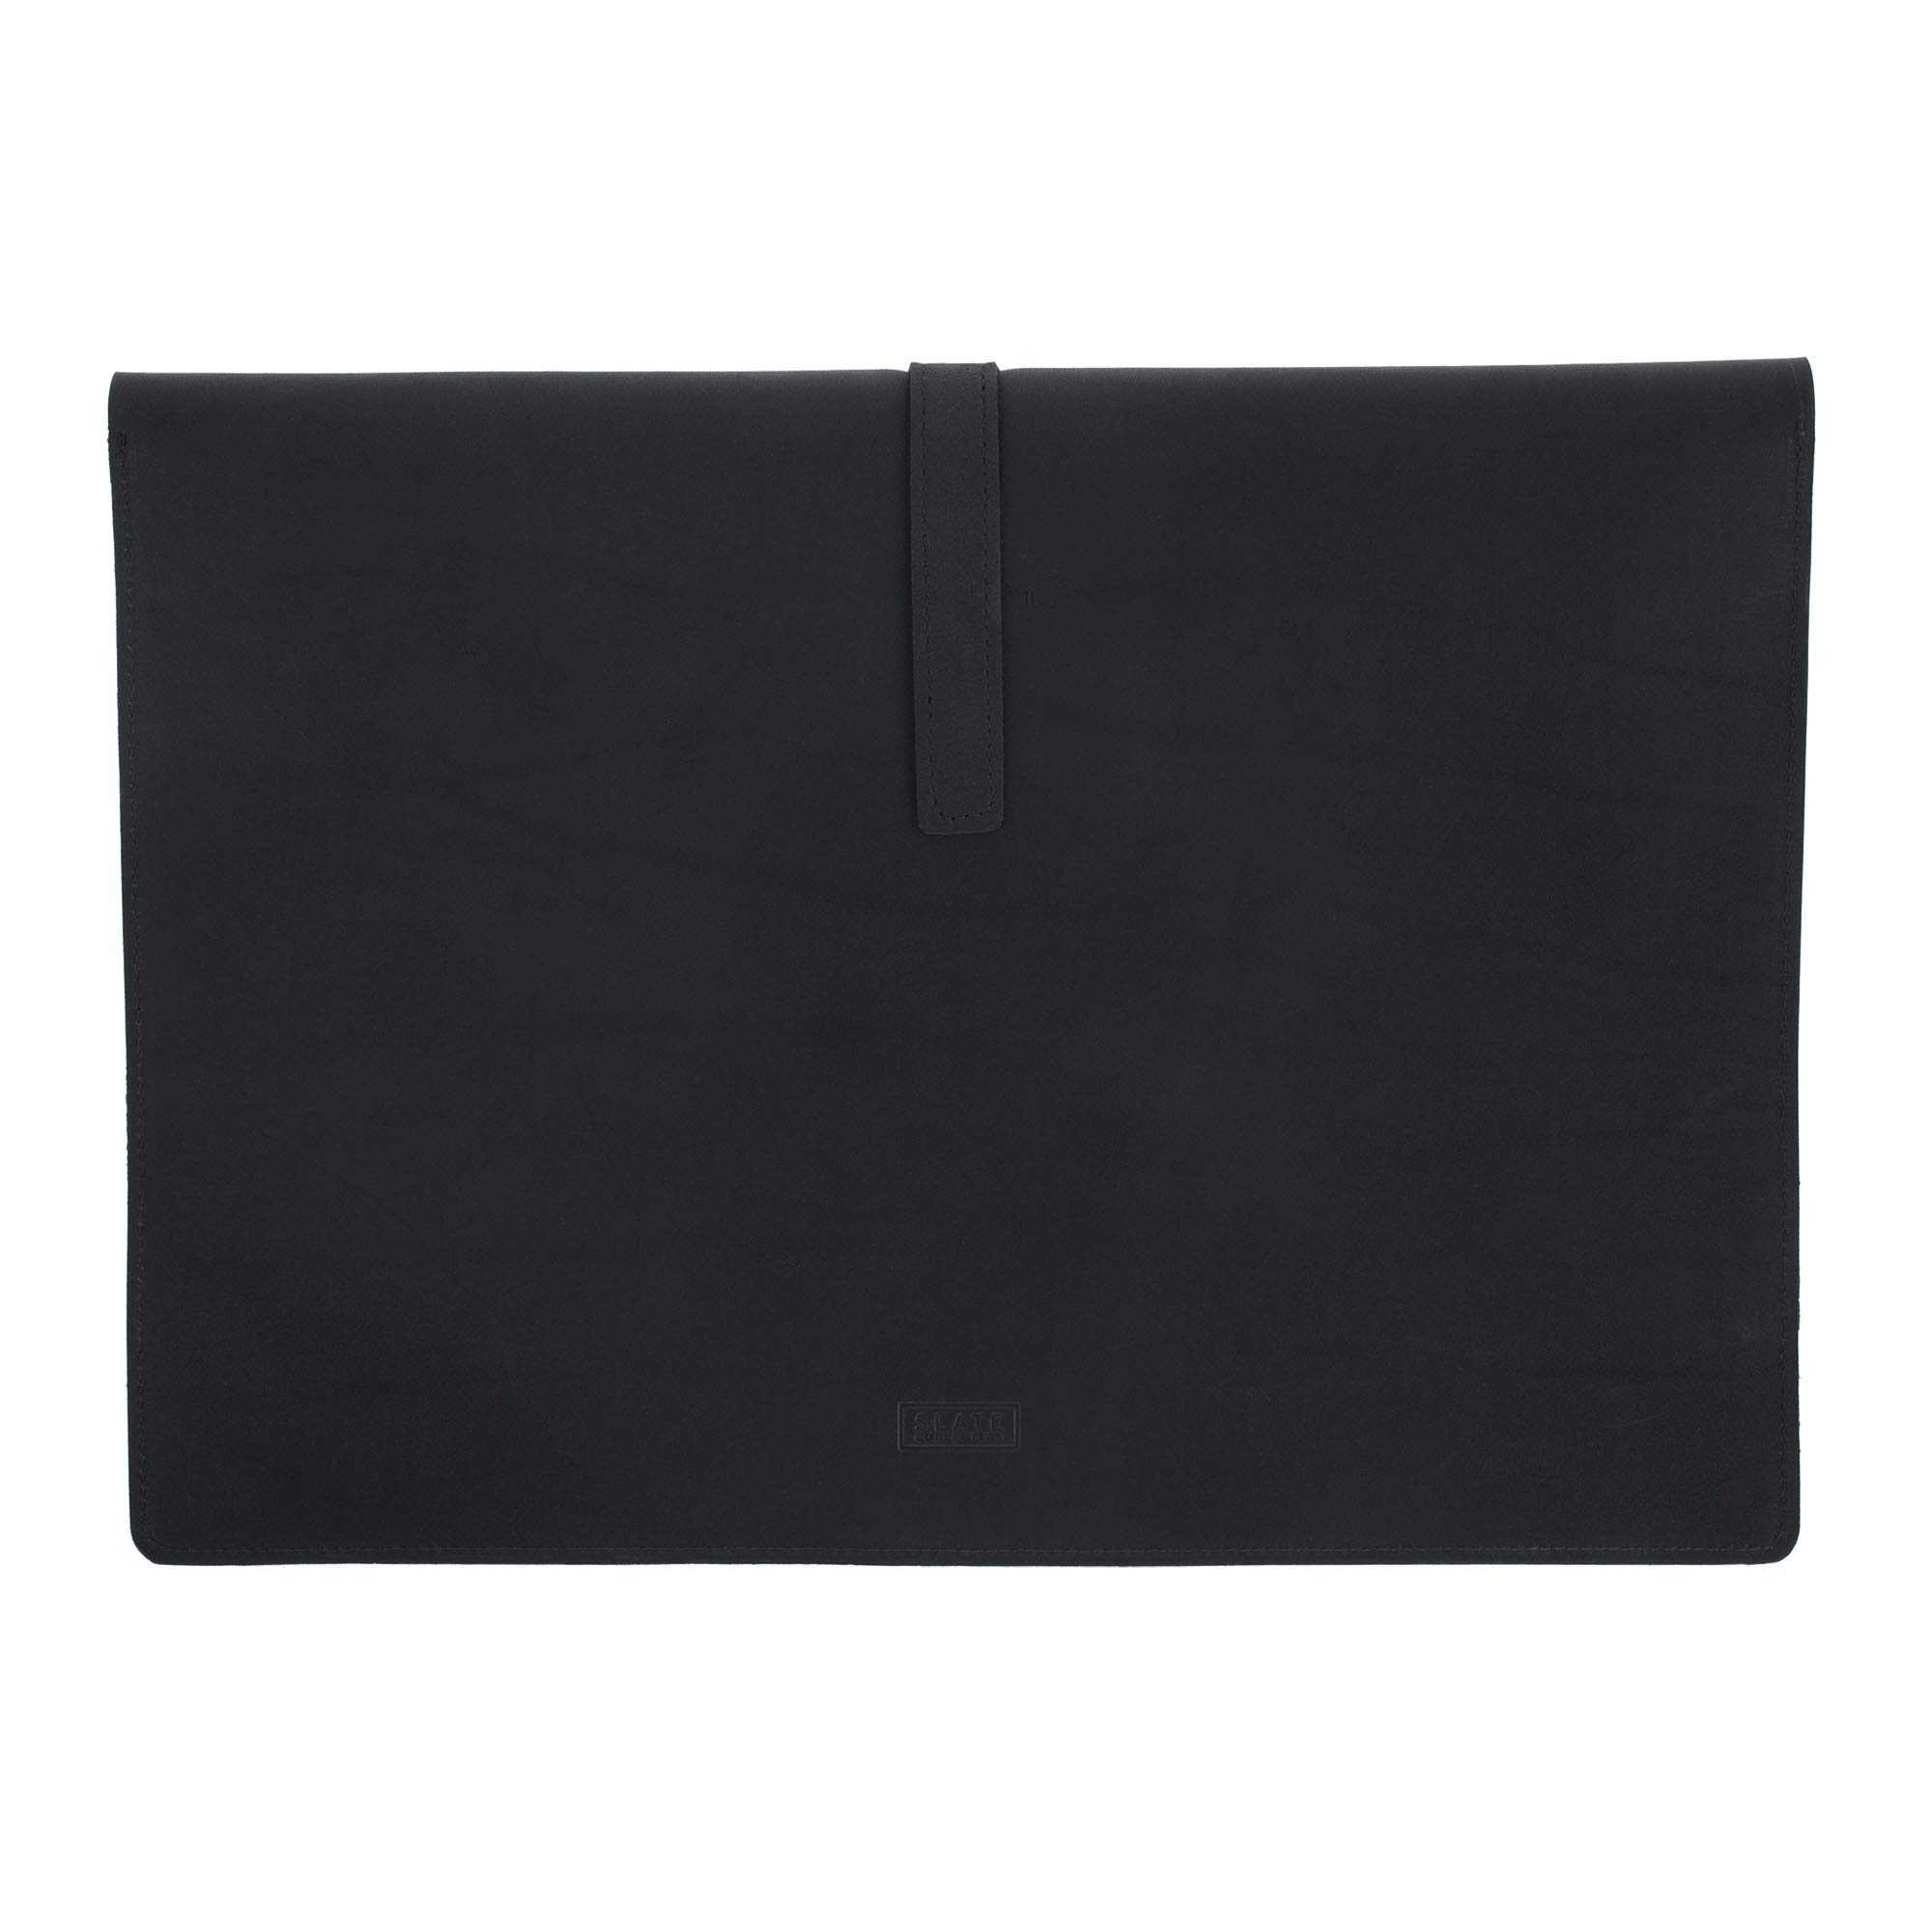 SLATE COLLECTION Belltown Small Laptop Sleeve, Full-Grain Leather (Midnight, fits 13'' Laptop) by SLATE COLLECTION (Image #4)